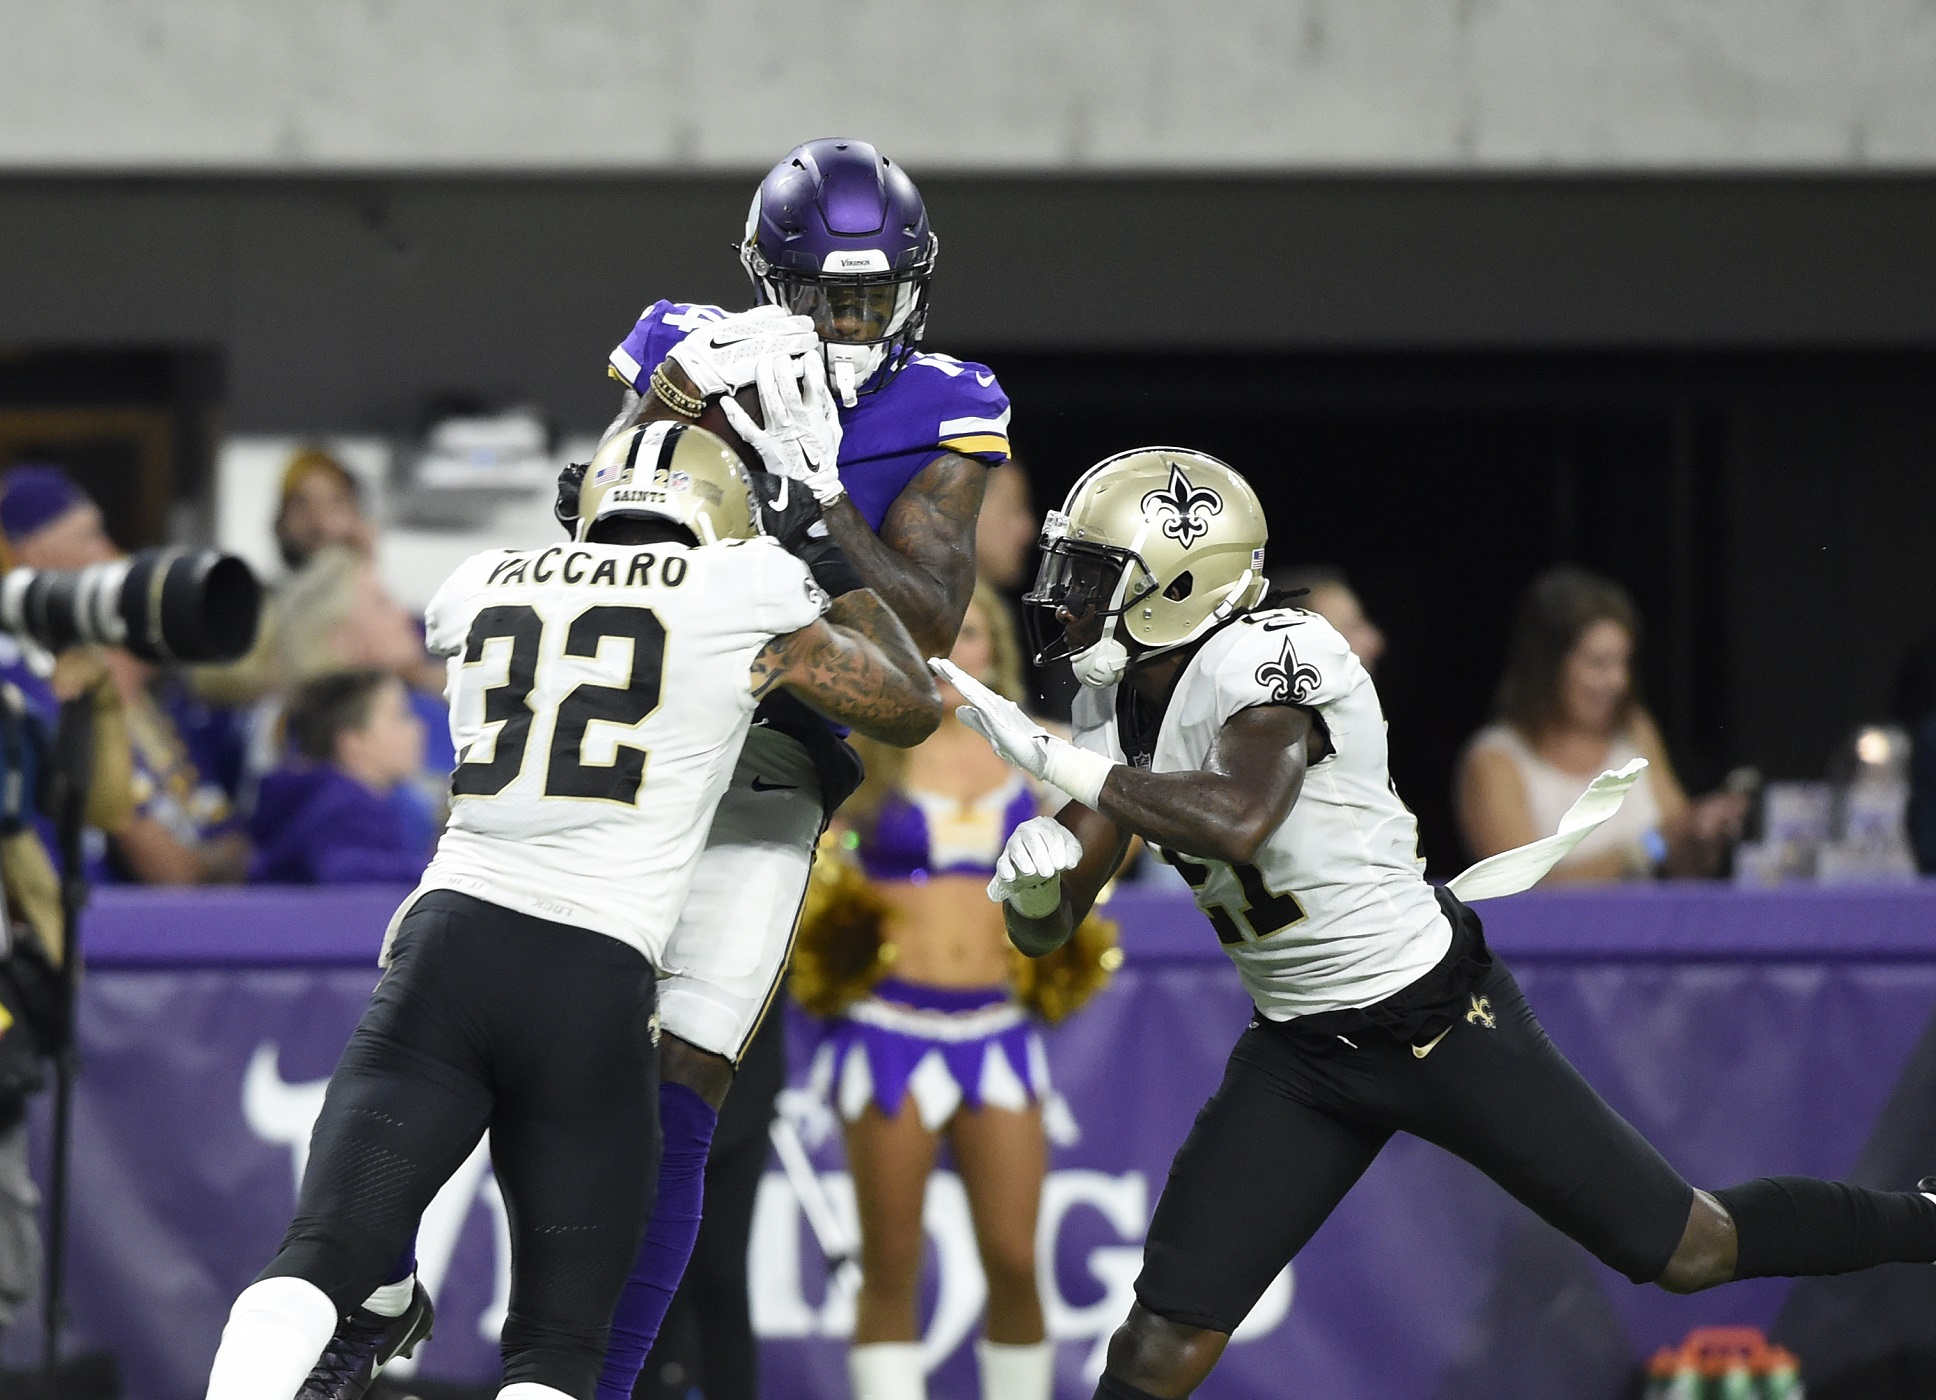 Saints safety Kenny Vaccaro: 'I'm staying here until they don't want me'